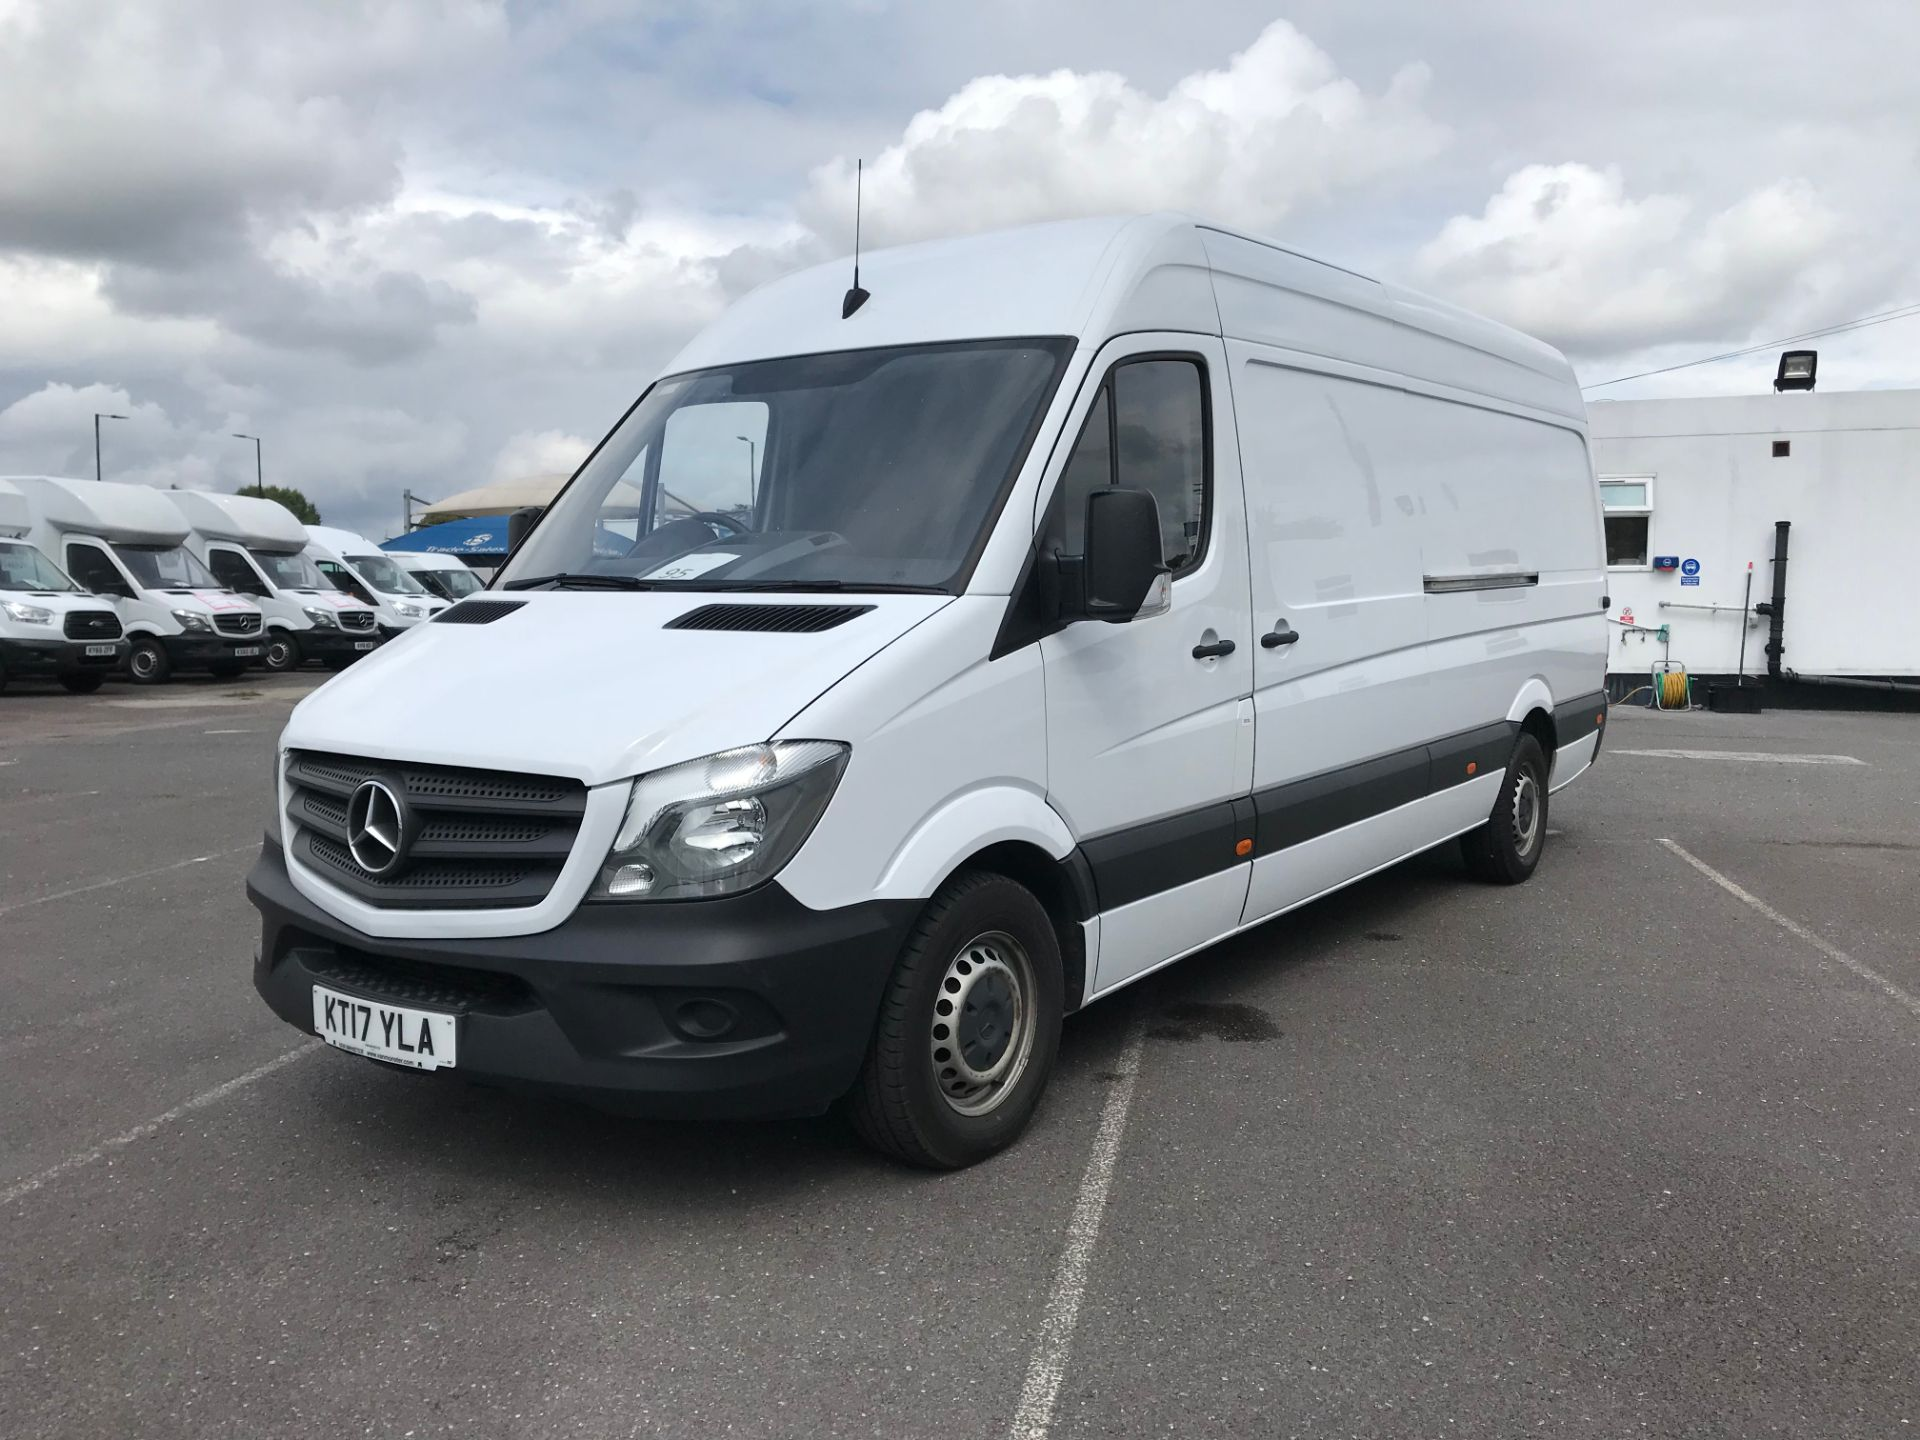 2017 Mercedes-Benz Sprinter  314 LWB H/R VAN EURO 6 *CONDITION REFLECTED IN PRICE* (KT17YLA) Image 2